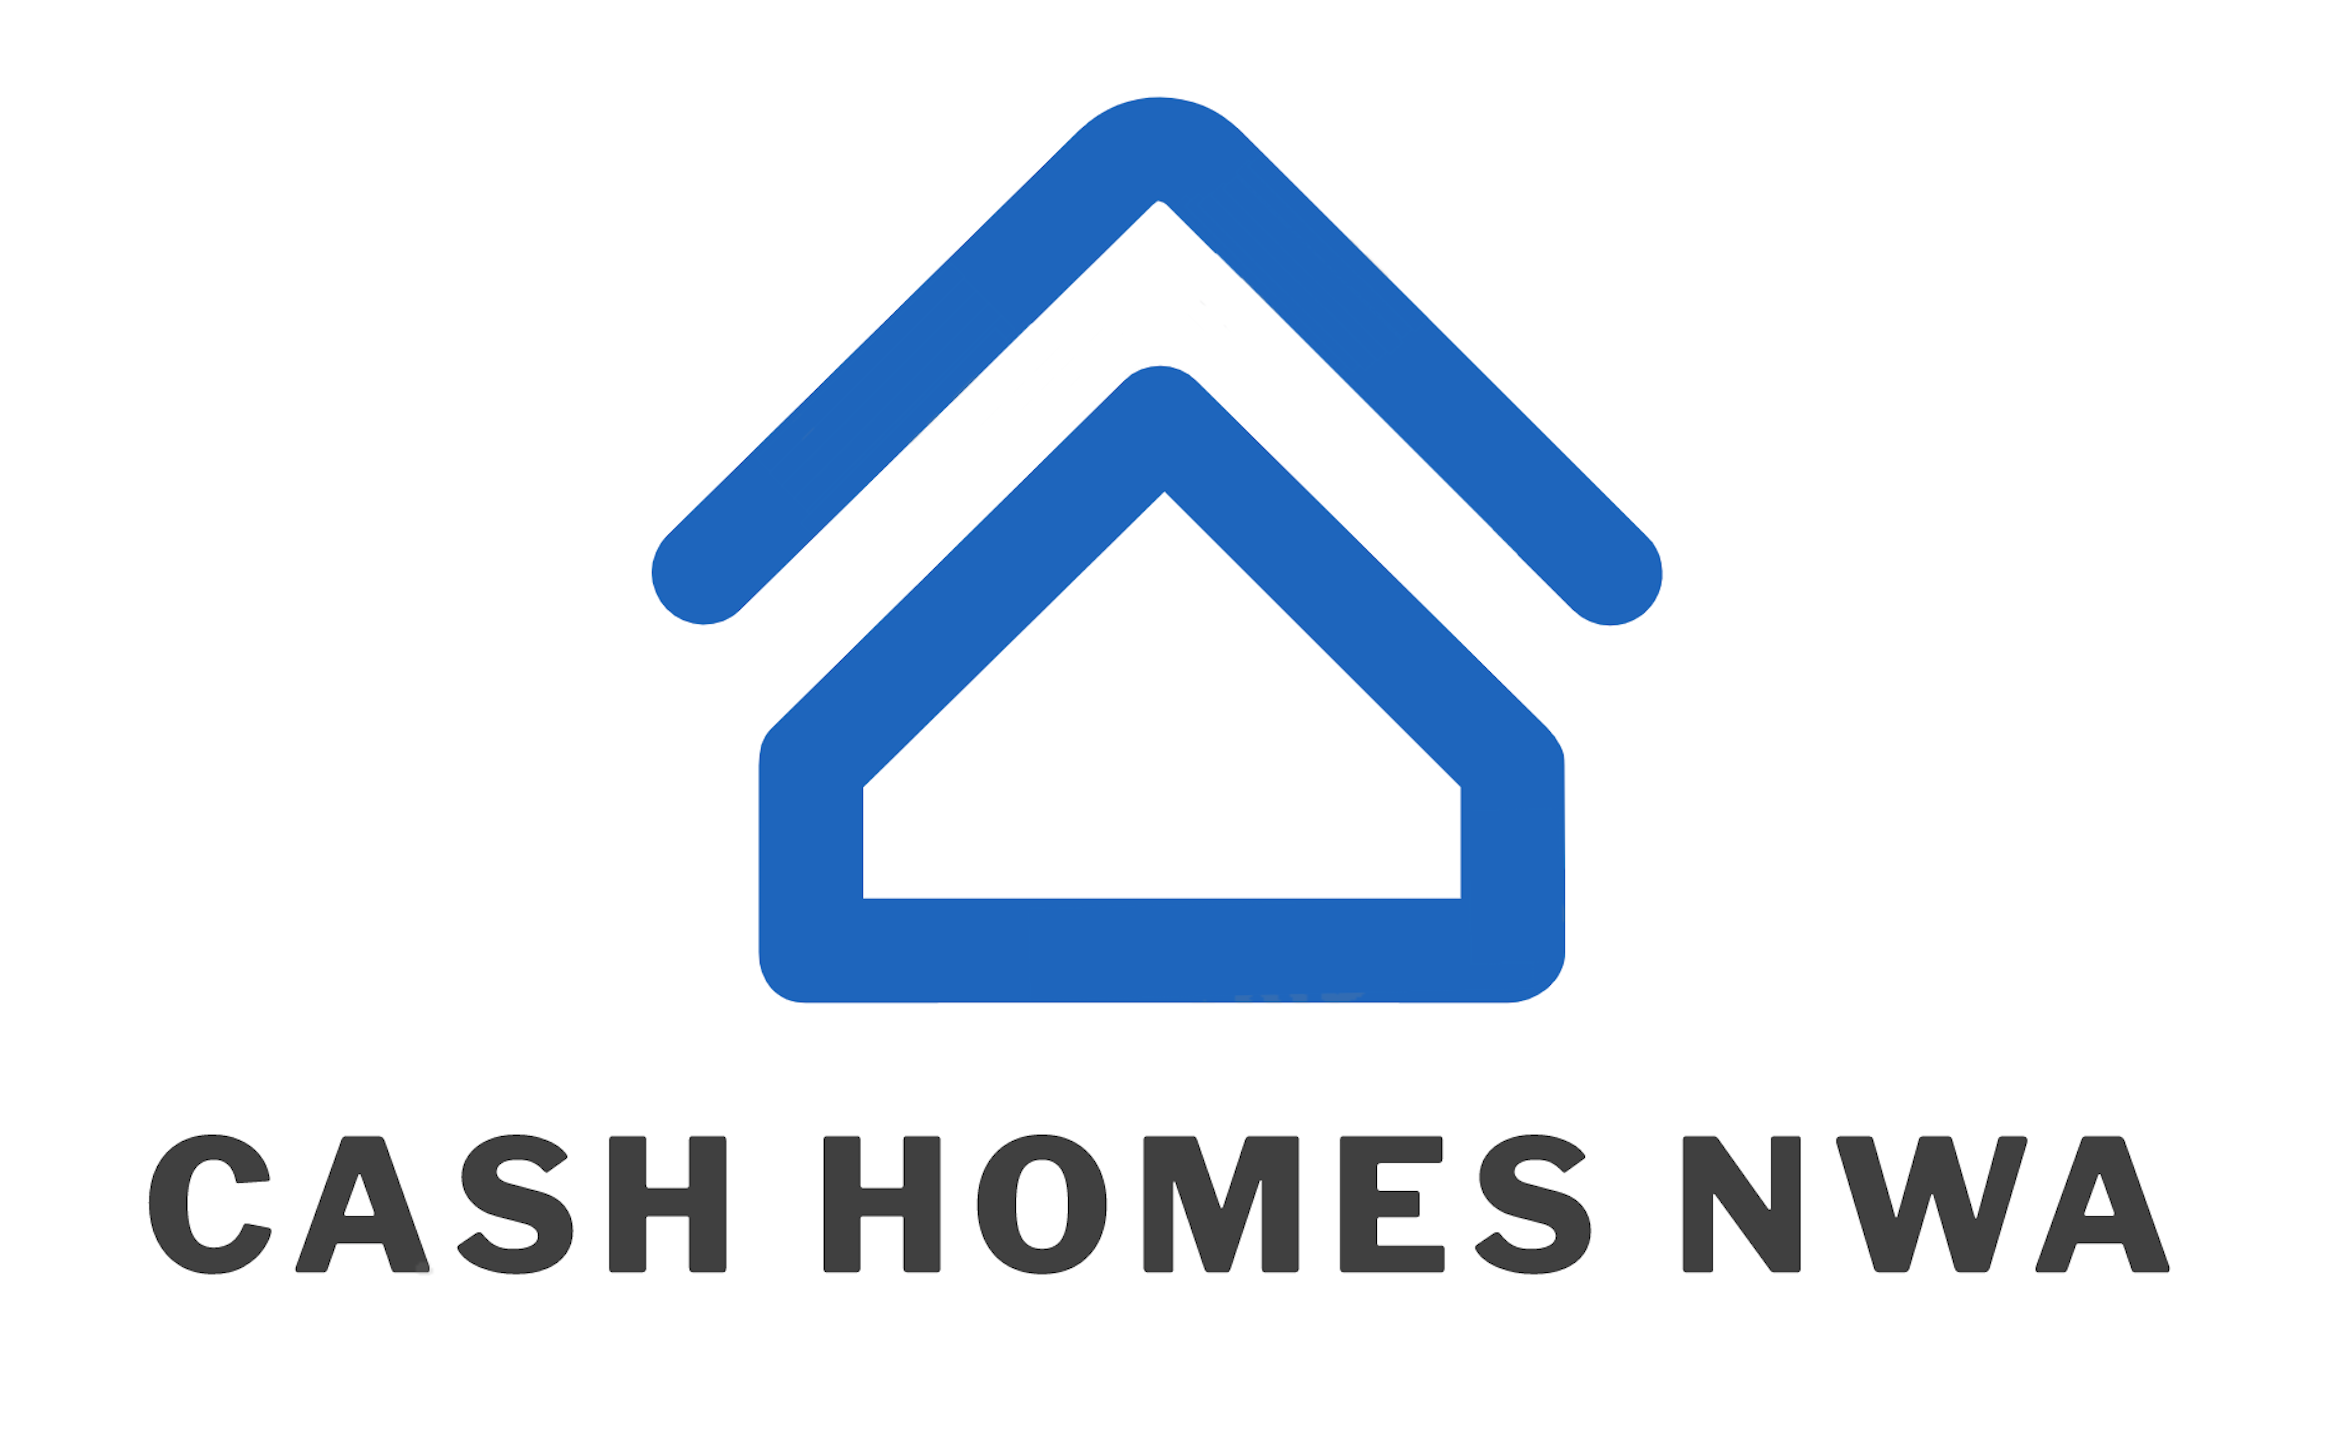 Cash Homes NWA Logo